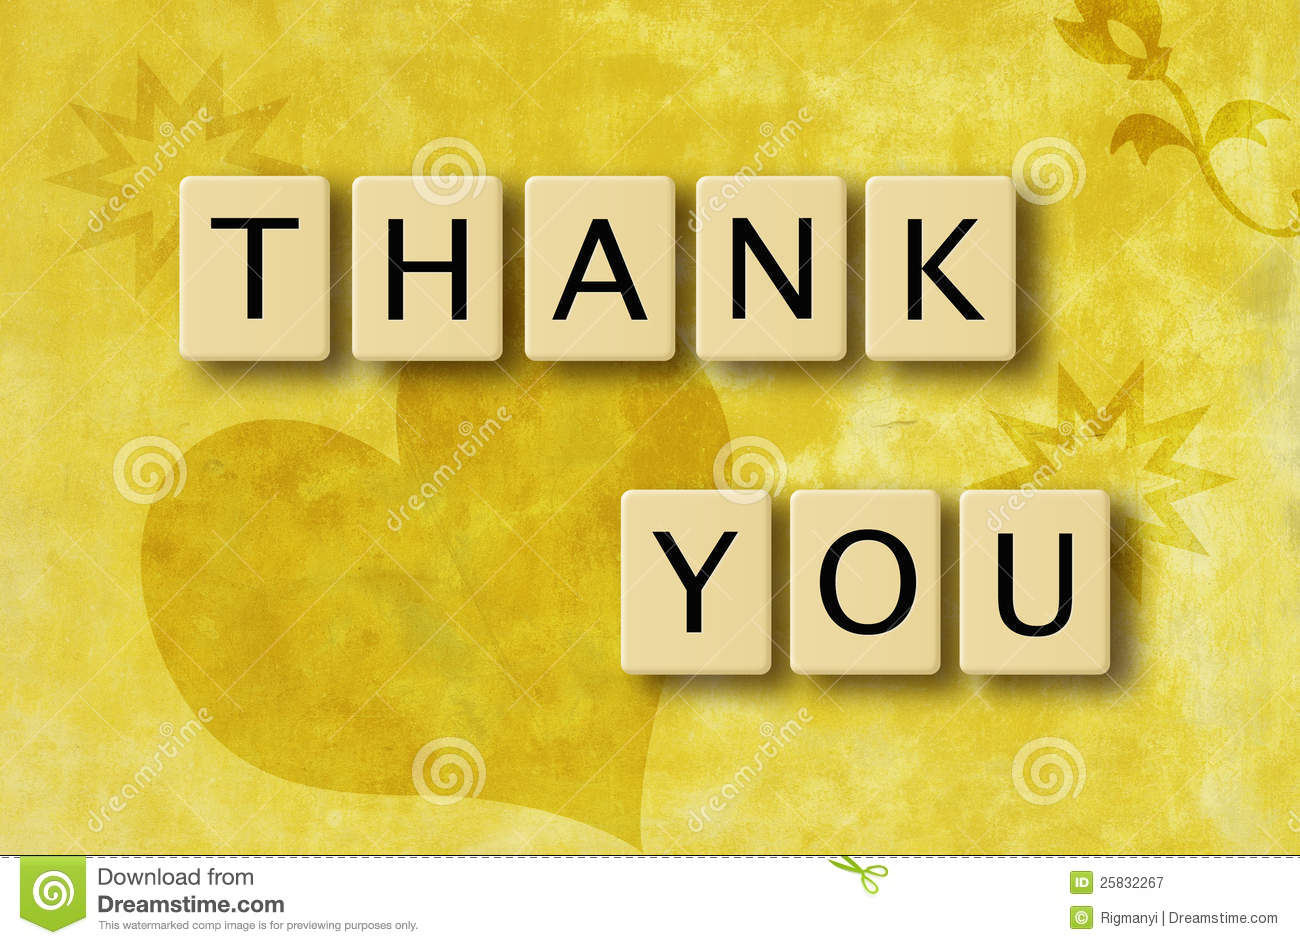 Wooden scrabble tiles spelling out Thank You against yellow background ...